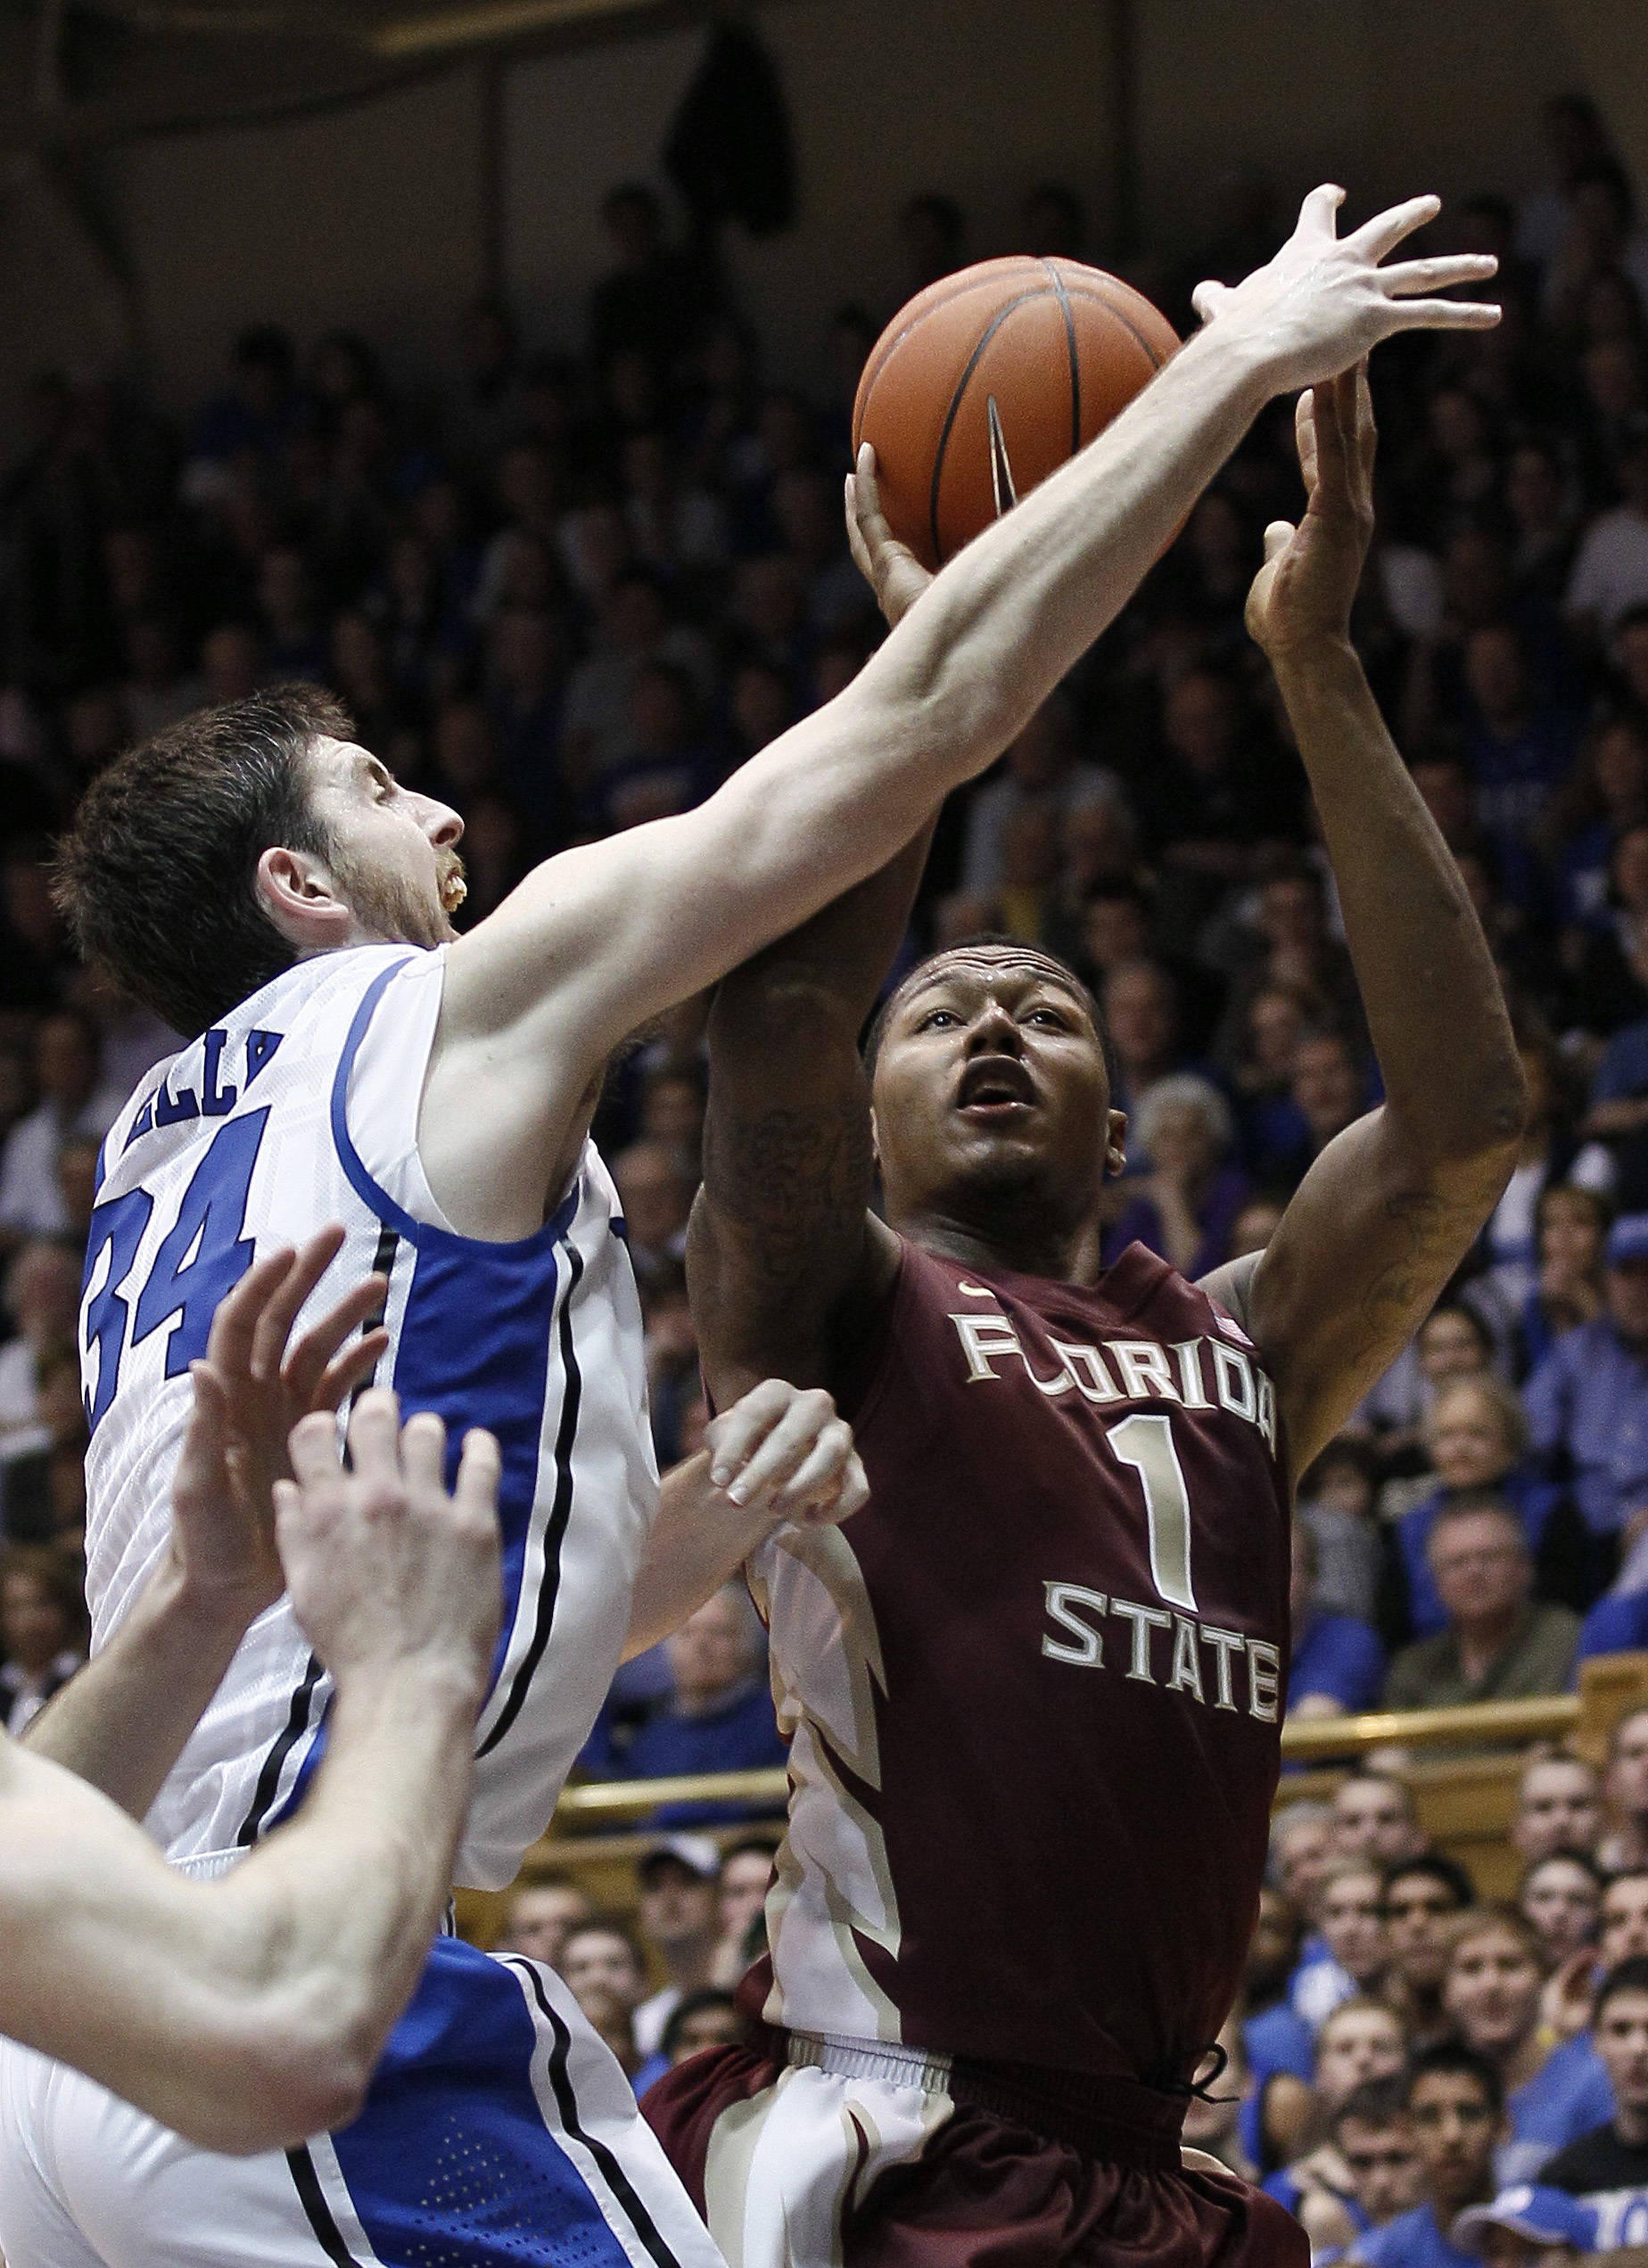 Duke's Ryan Kelly, left, defends while Florida State's Xavier Gibson (1) shoots during the second half. (AP Photo/Gerry Broome)